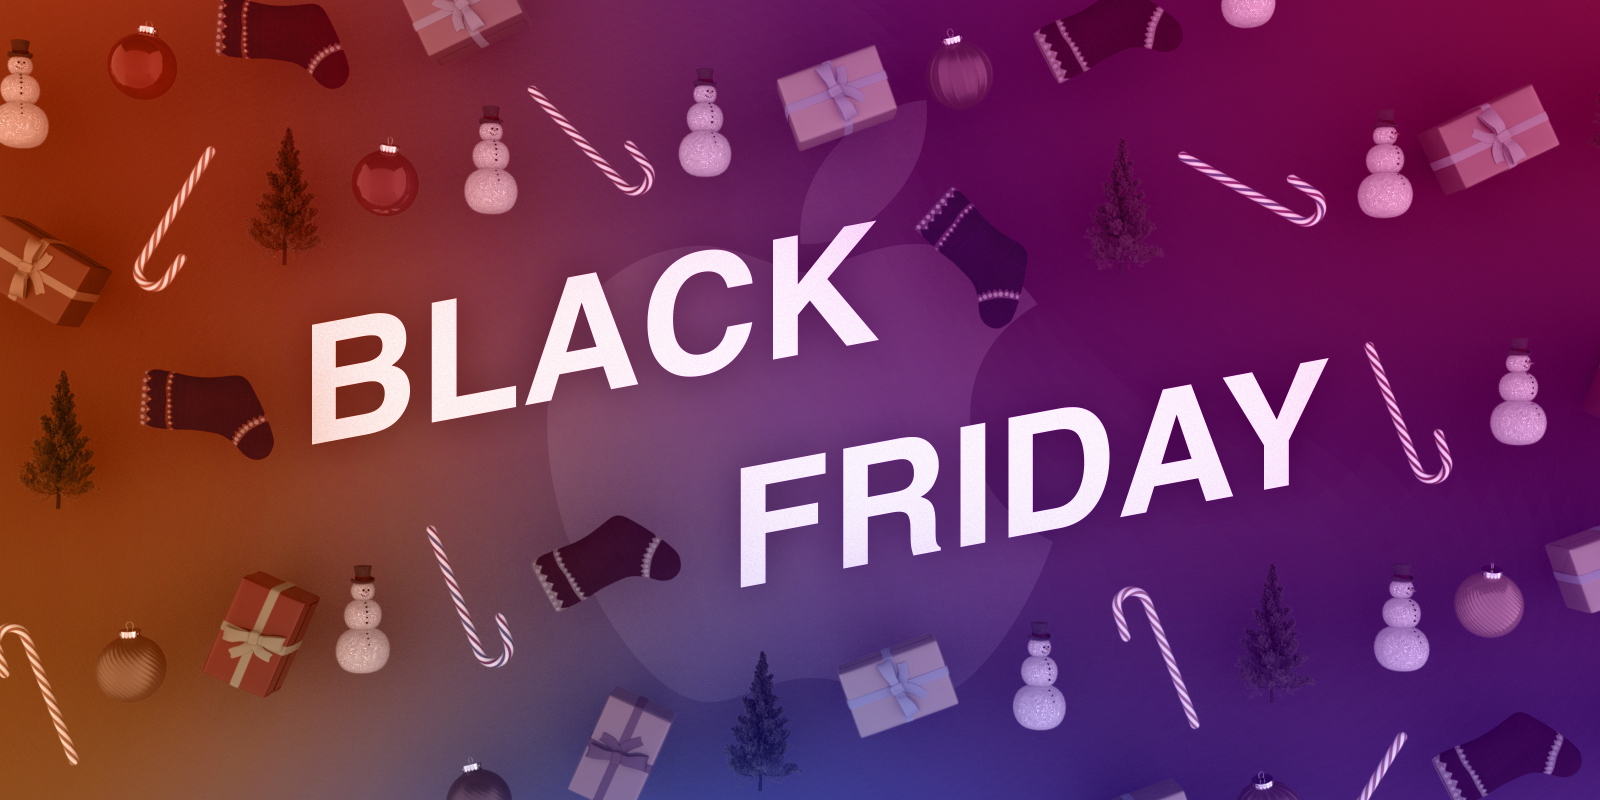 Black Friday 2020: Best Apple Deals to Plan For